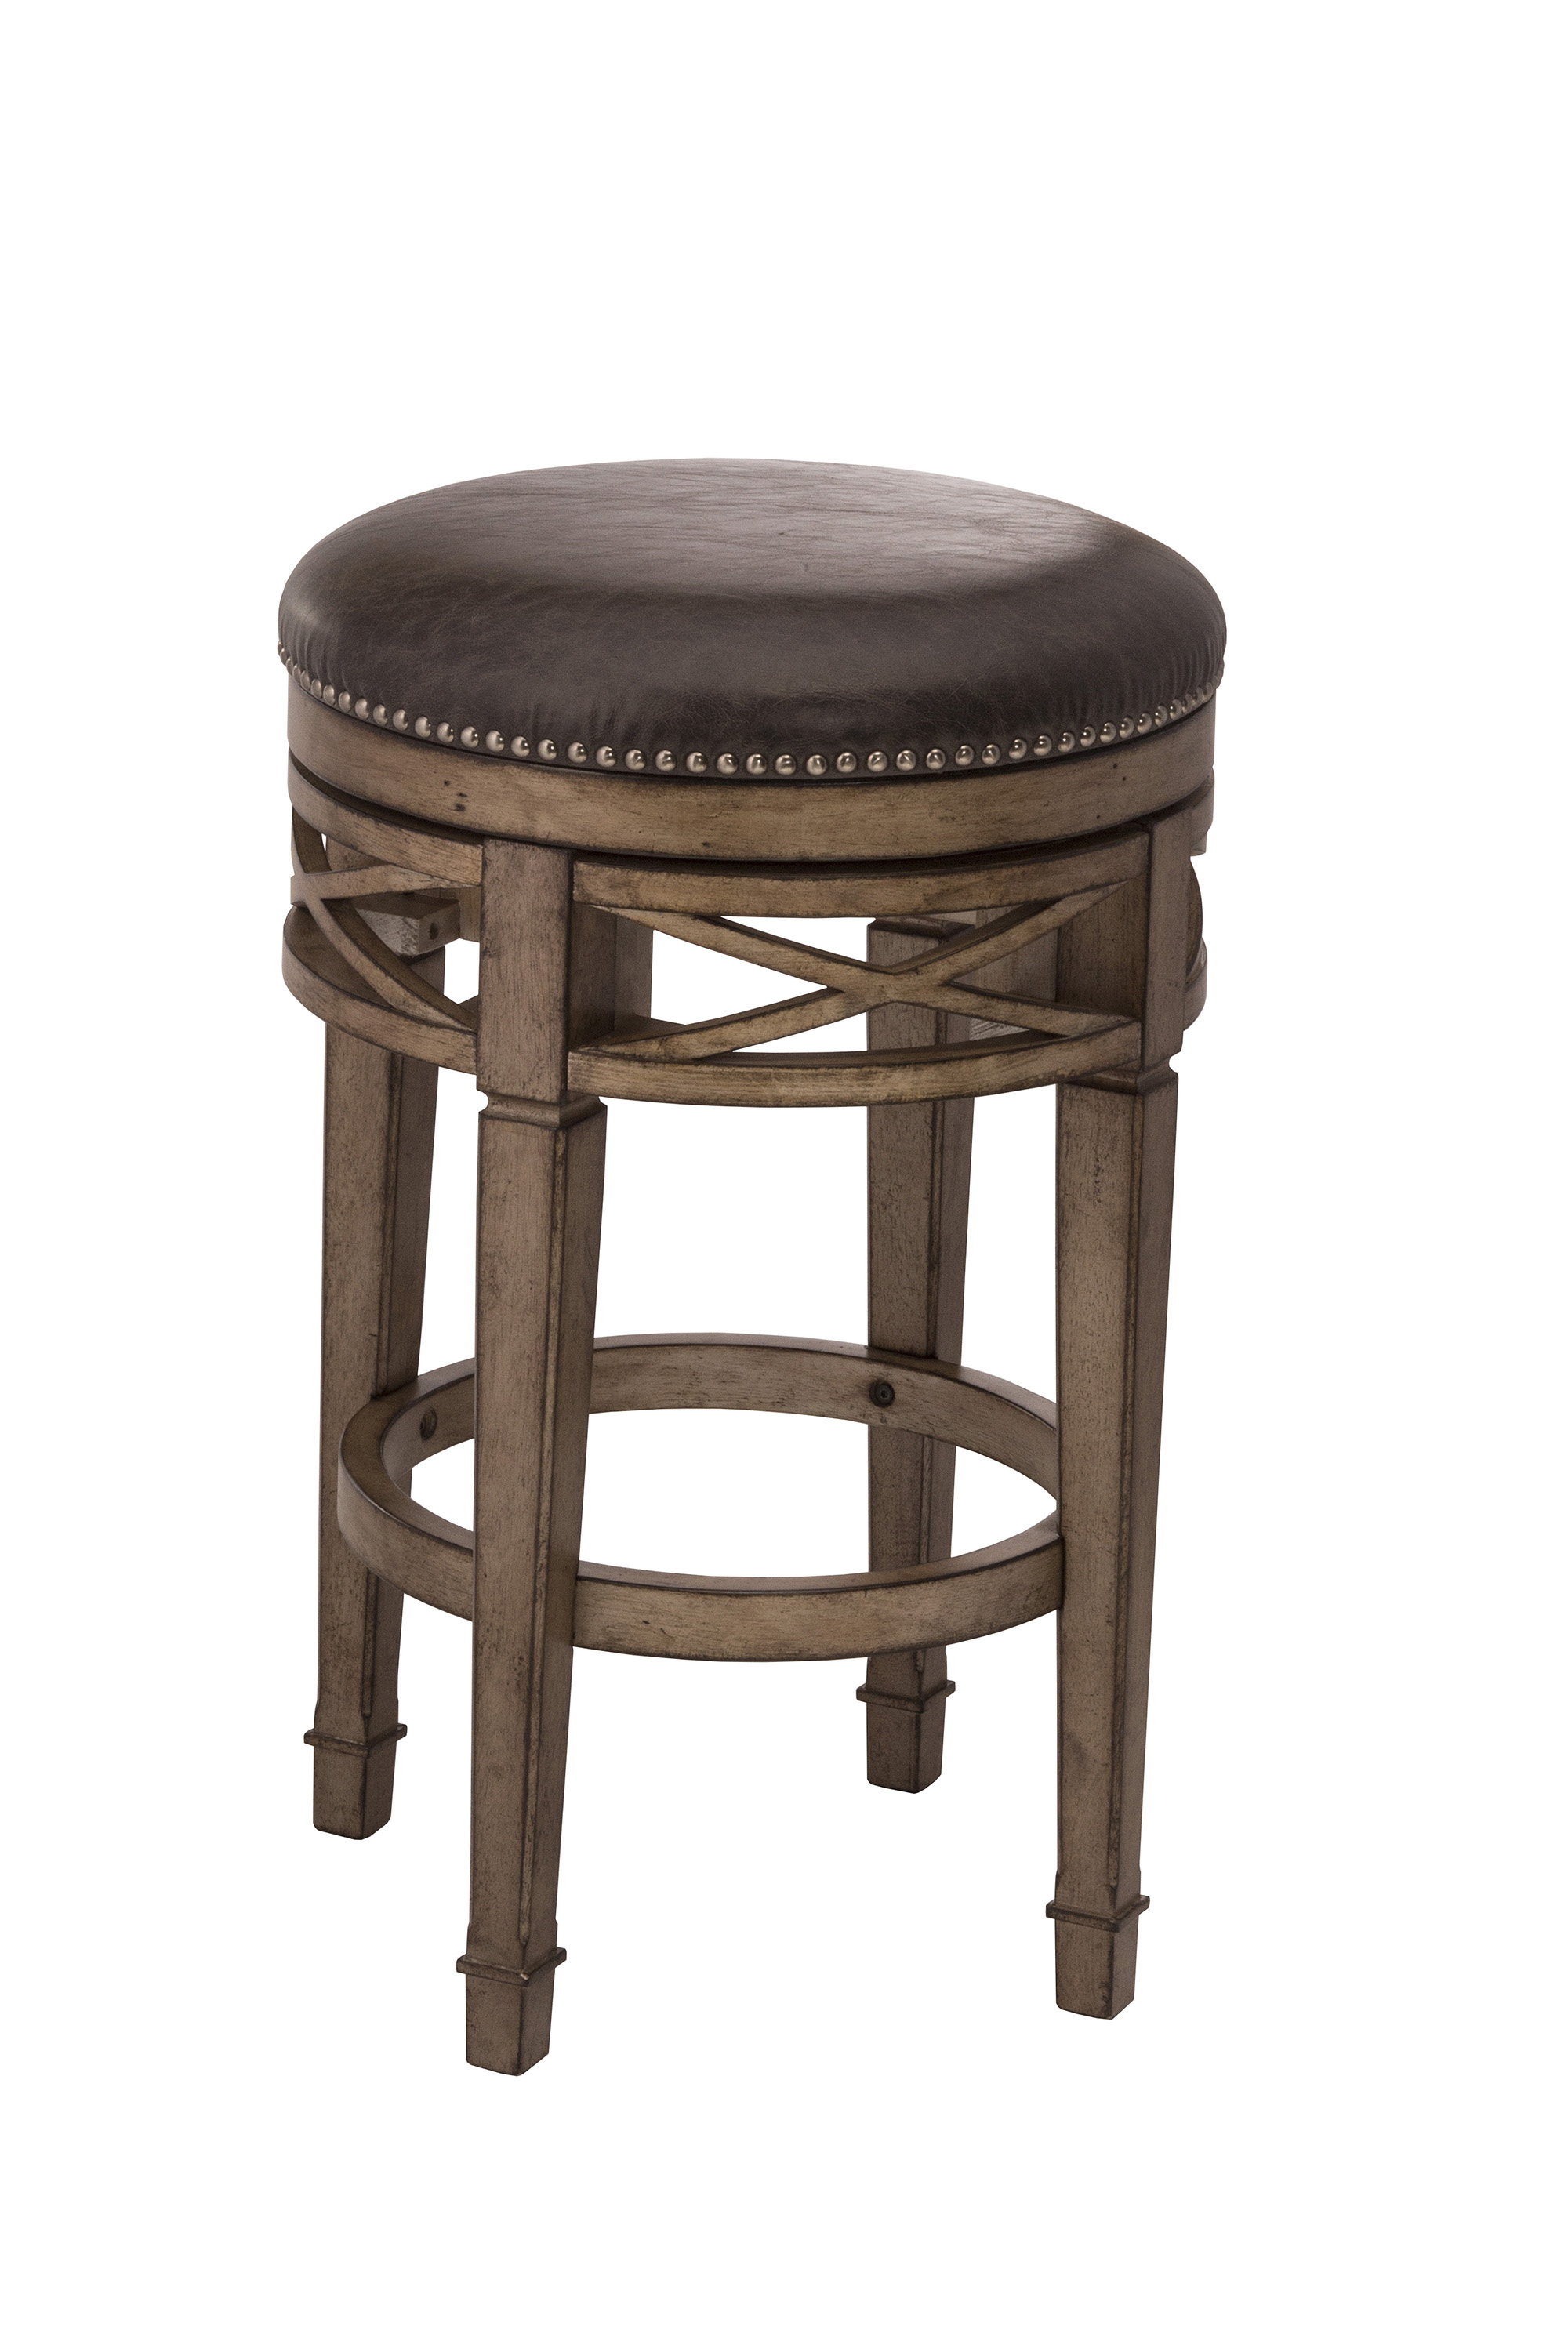 Hillsdale Backless Bar Stools Backless Swivel Bar Stool - Item Number: 5609-830